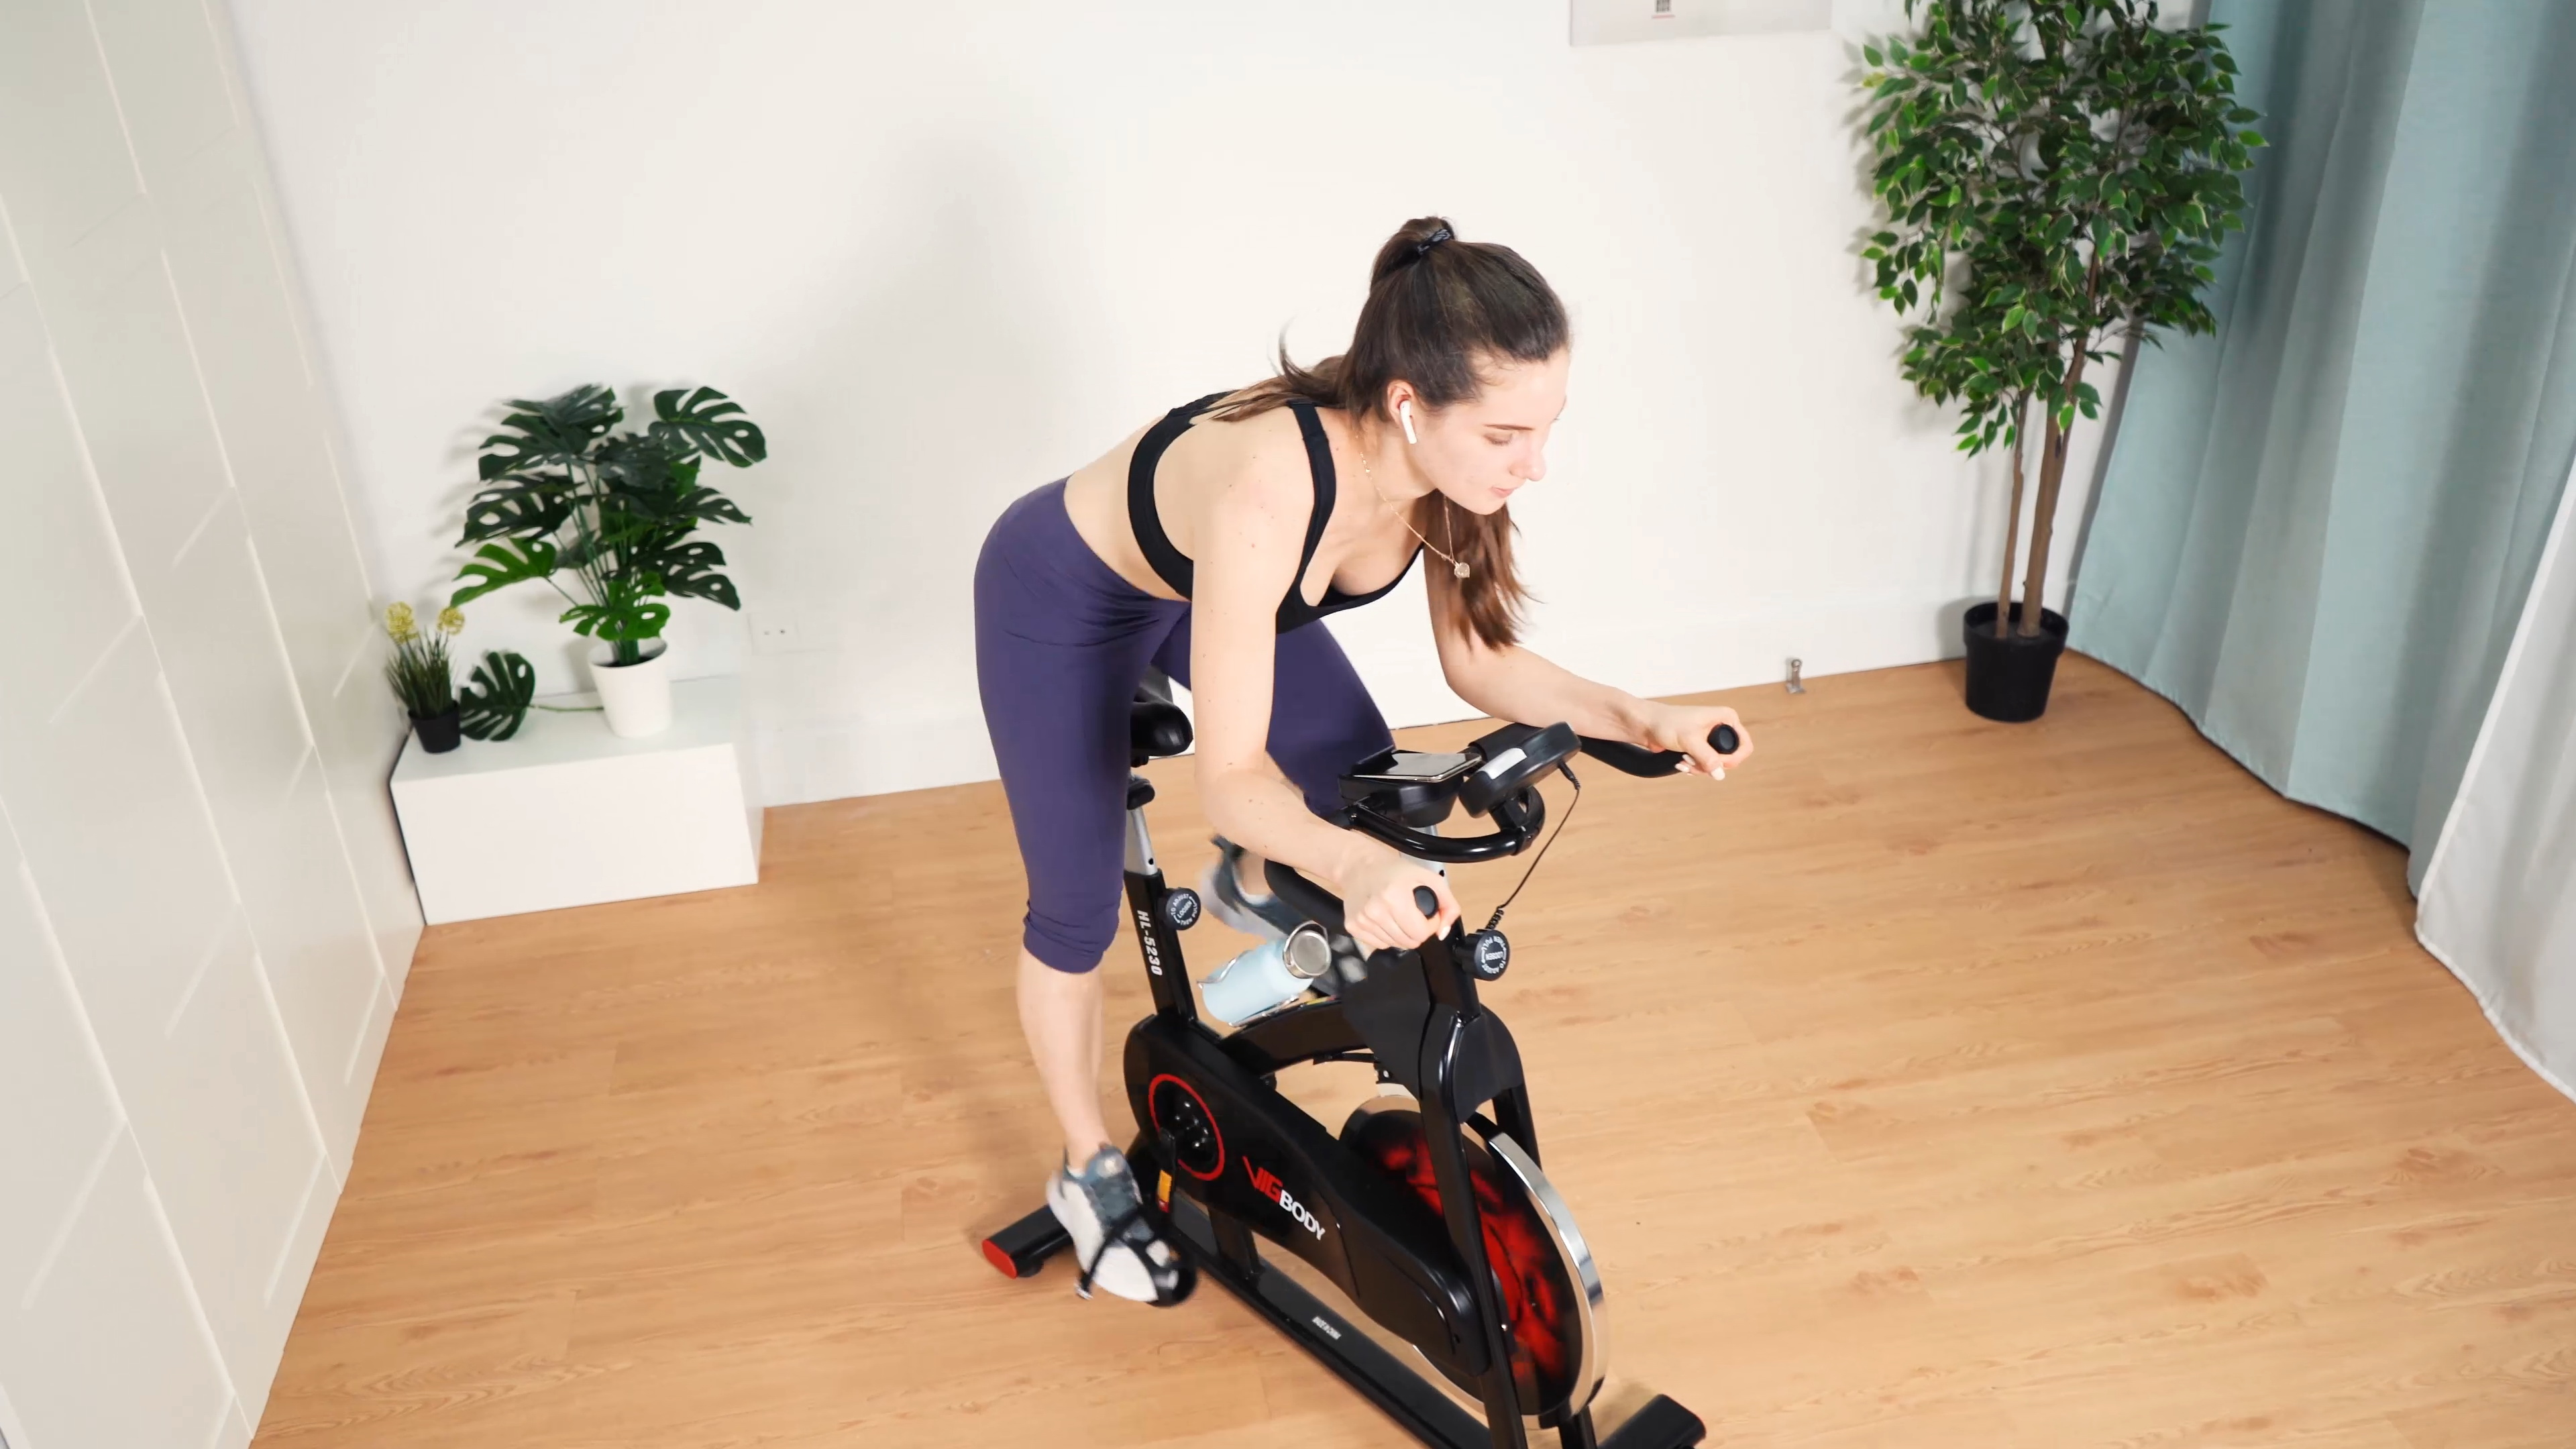 $105 off an exercise bike